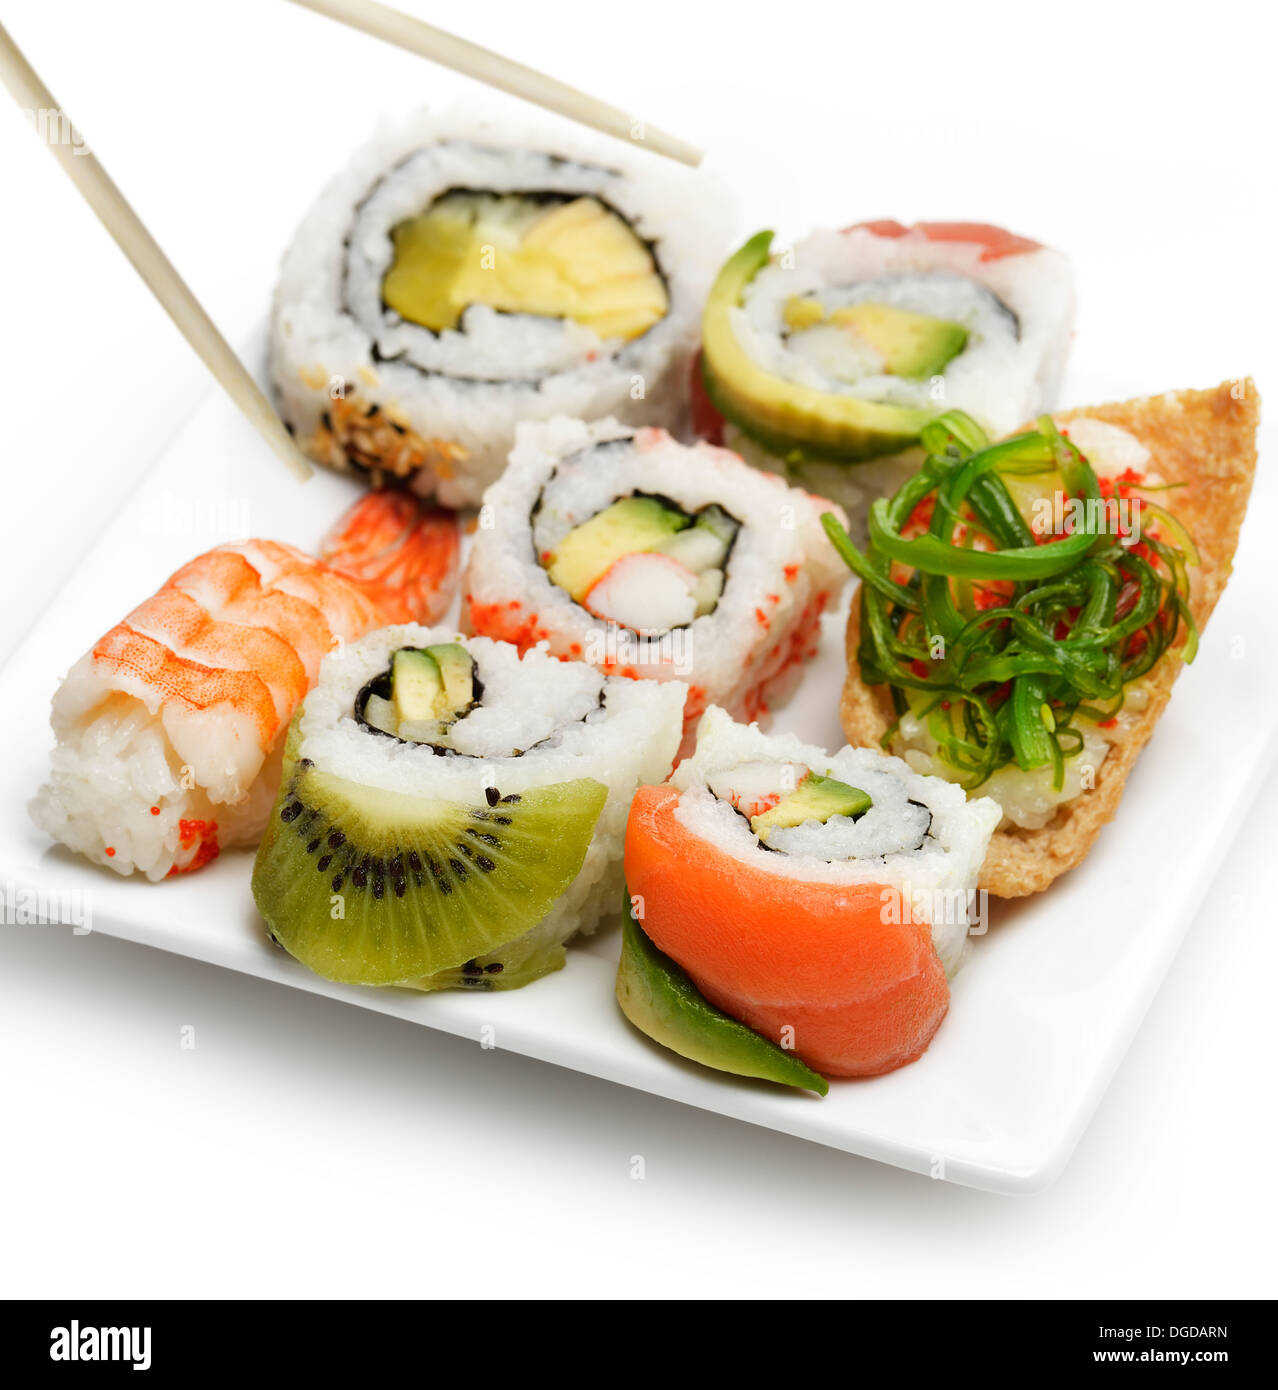 Sushi Assortment On White Dish - Stock Image